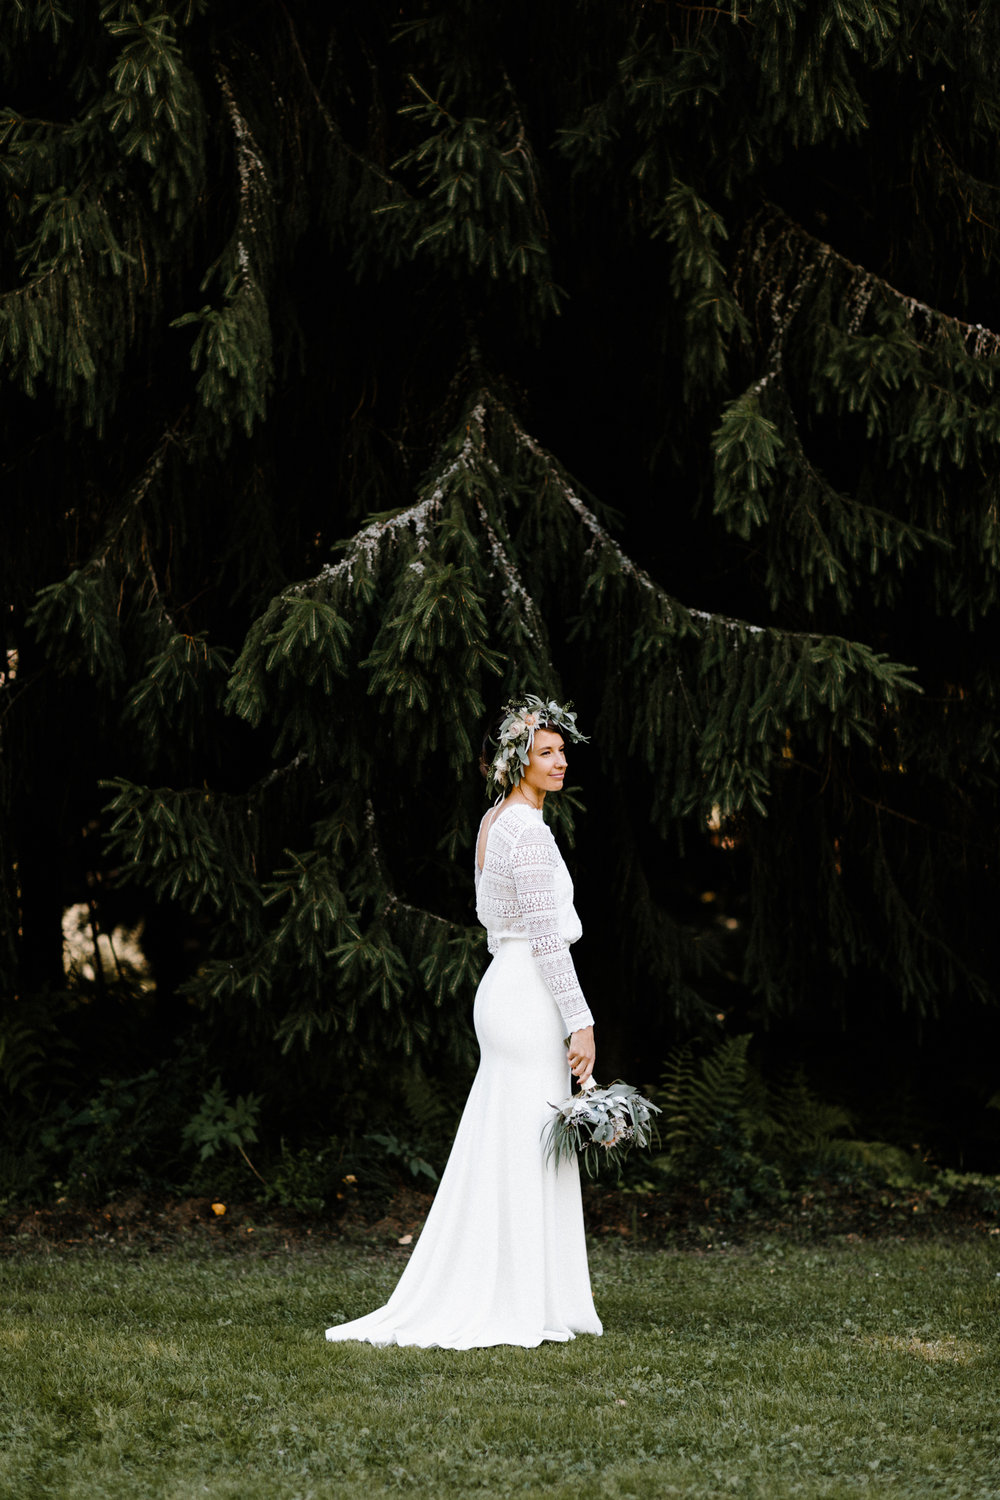 Julien + Johanna | Villa Ivan Falin | by Patrick Karkkolainen Wedding Photography-137.jpg